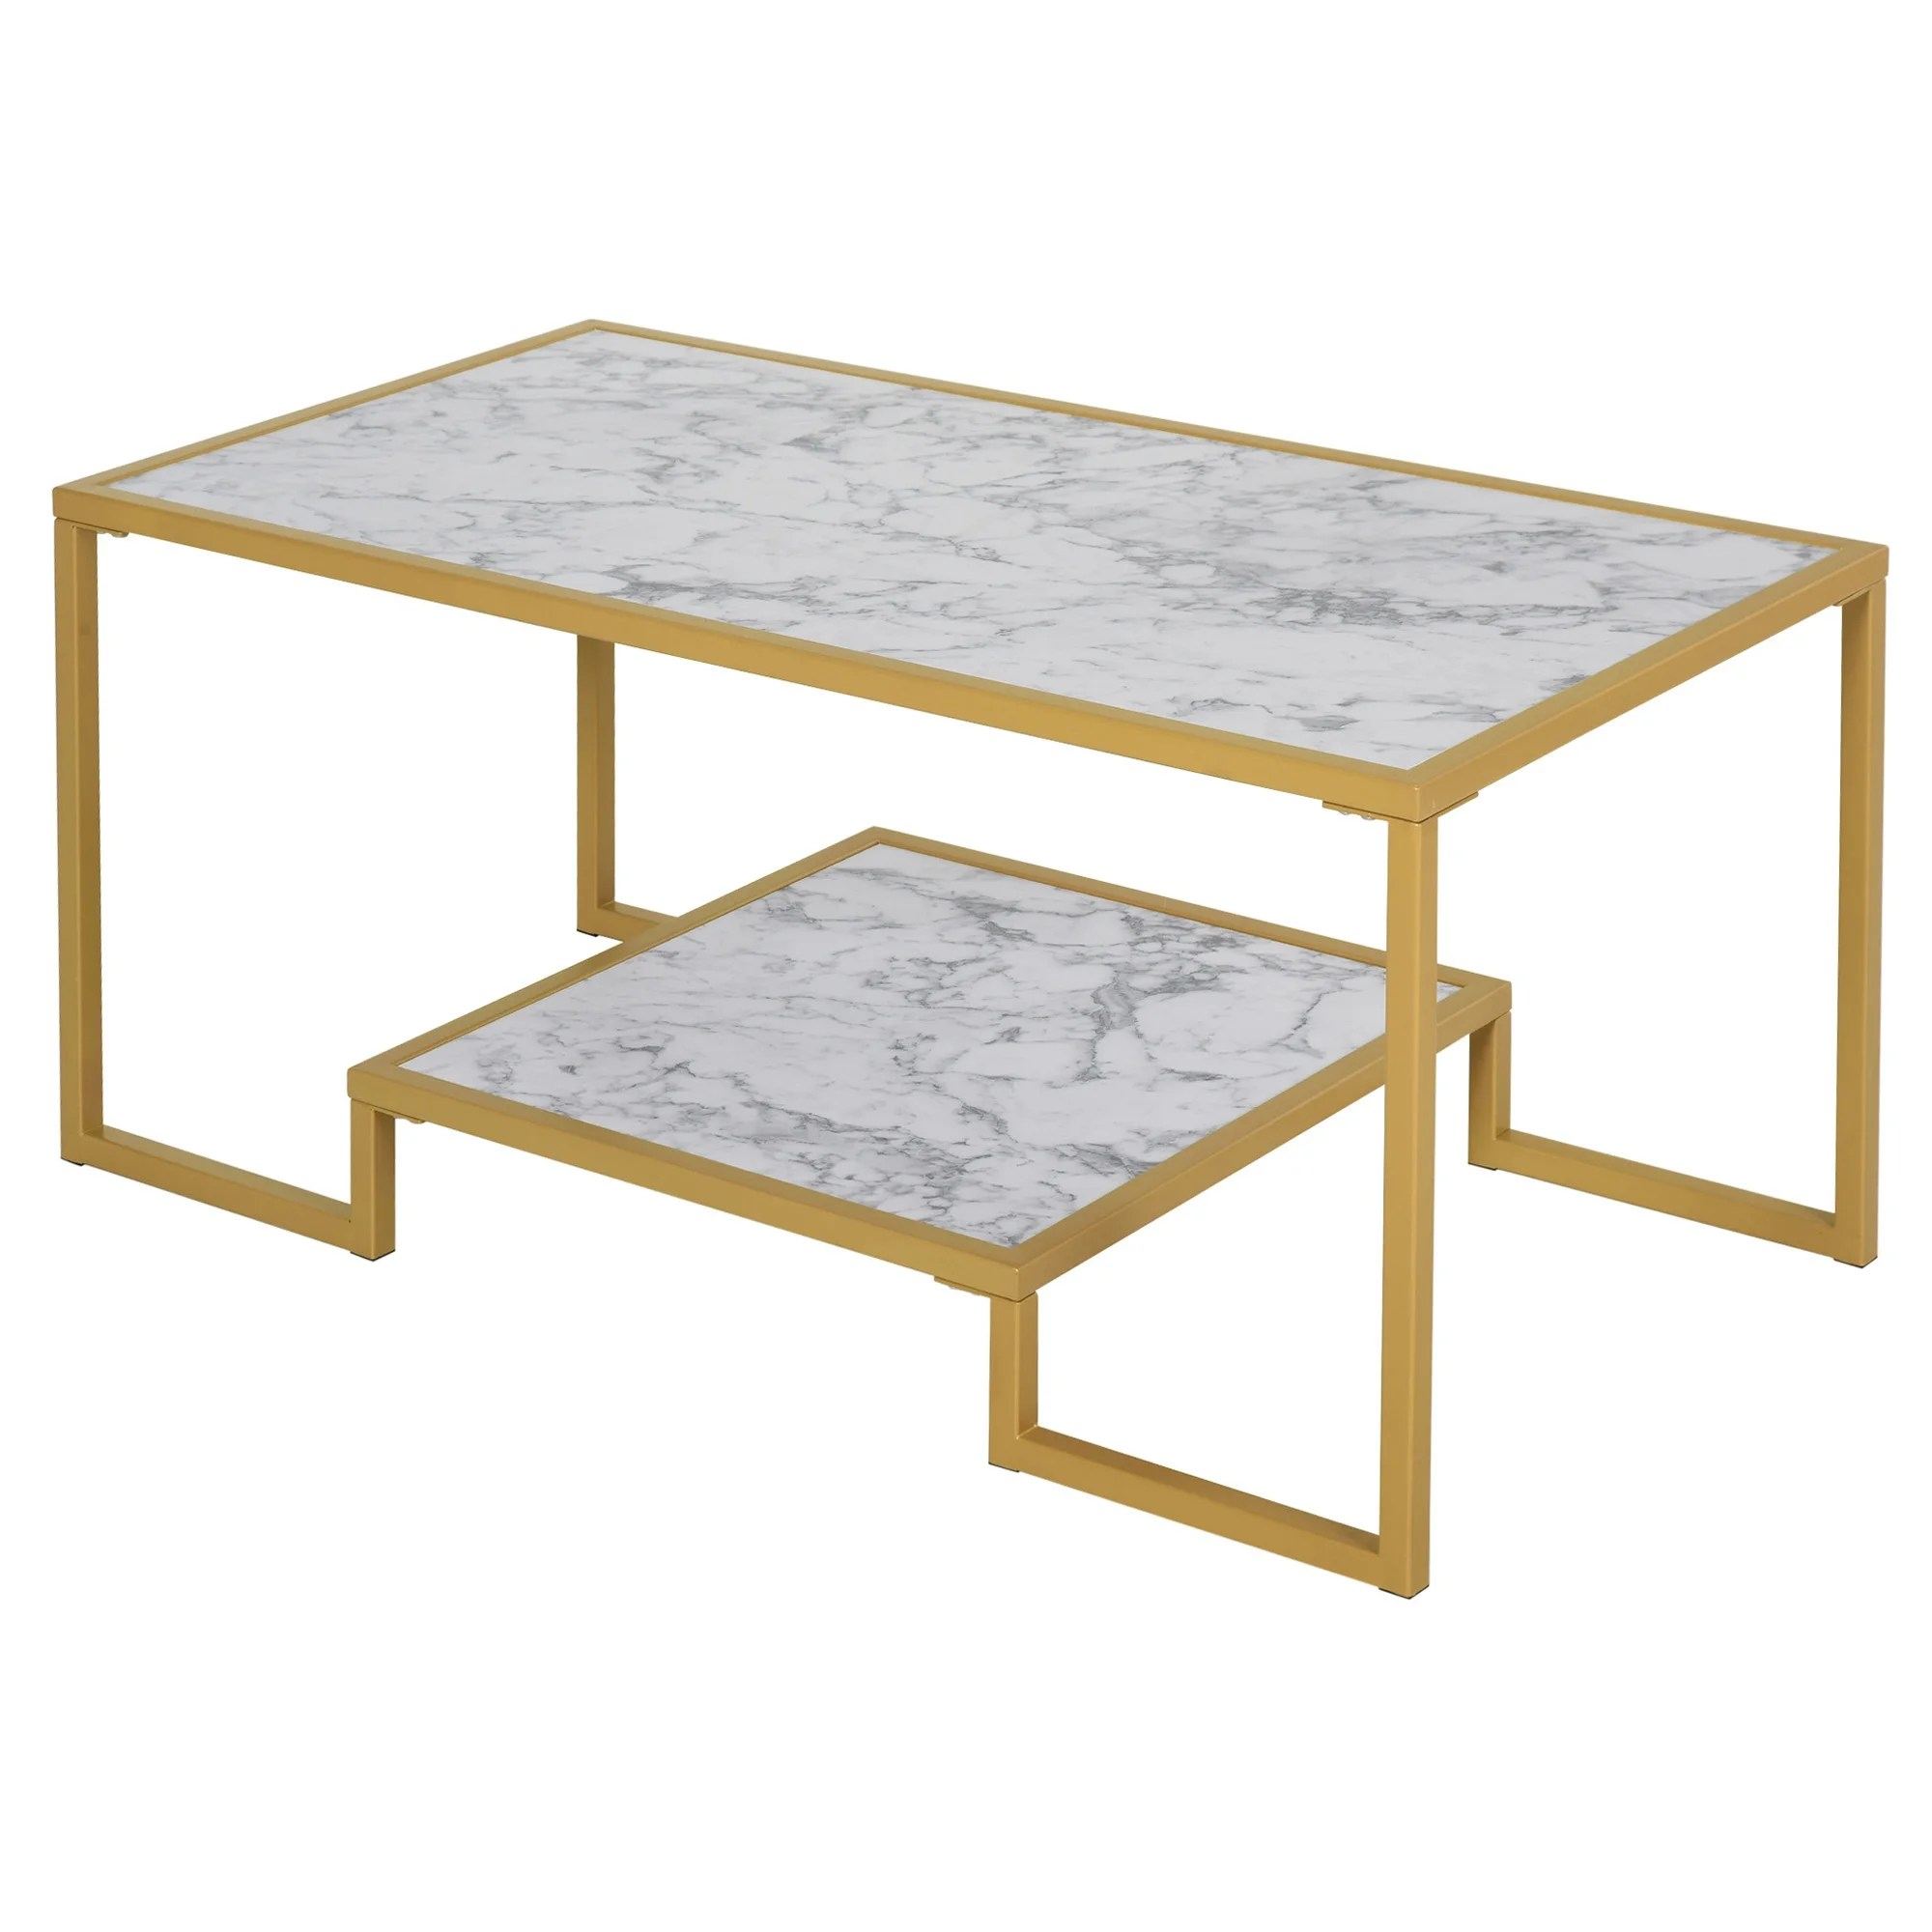 homcom minimalist art deco coffee table with a modern marble texture tabletop storage with underneath shelf white